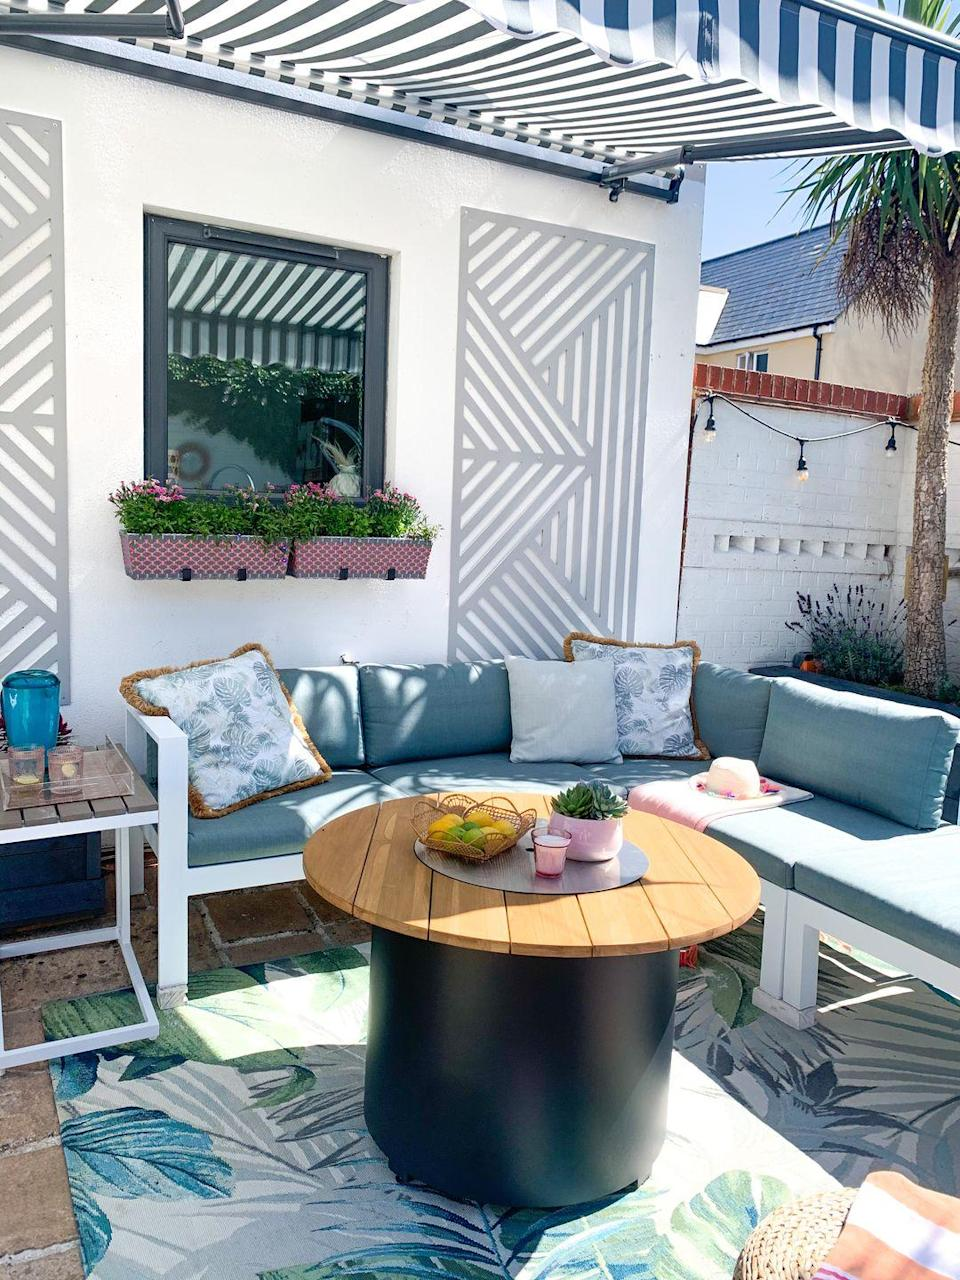 """<p>How inviting does this outdoor seating area look? From the <a href=""""https://www.housebeautiful.com/uk/garden/g32139876/outdoor-cushions/"""" rel=""""nofollow noopener"""" target=""""_blank"""" data-ylk=""""slk:garden cushions"""" class=""""link rapid-noclick-resp"""">garden cushions</a> to the tropical rug, it's the perfect place for whiling away a lazy summer's afternoon. </p>"""